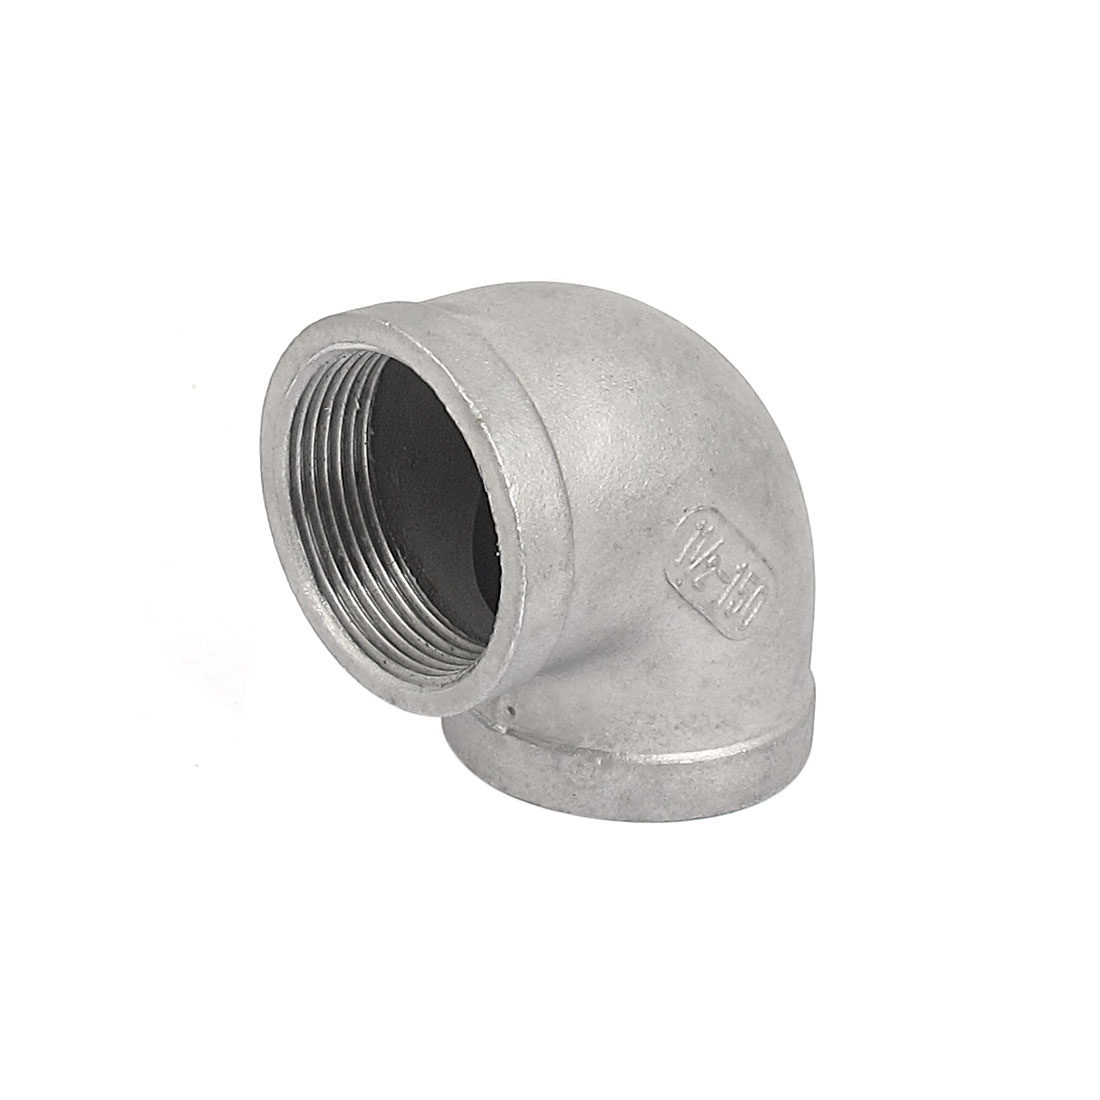 Equal Female Elbow Water Tube Coupling Fitting 1 1/2 BSP to 1 1/2 BSP Grey